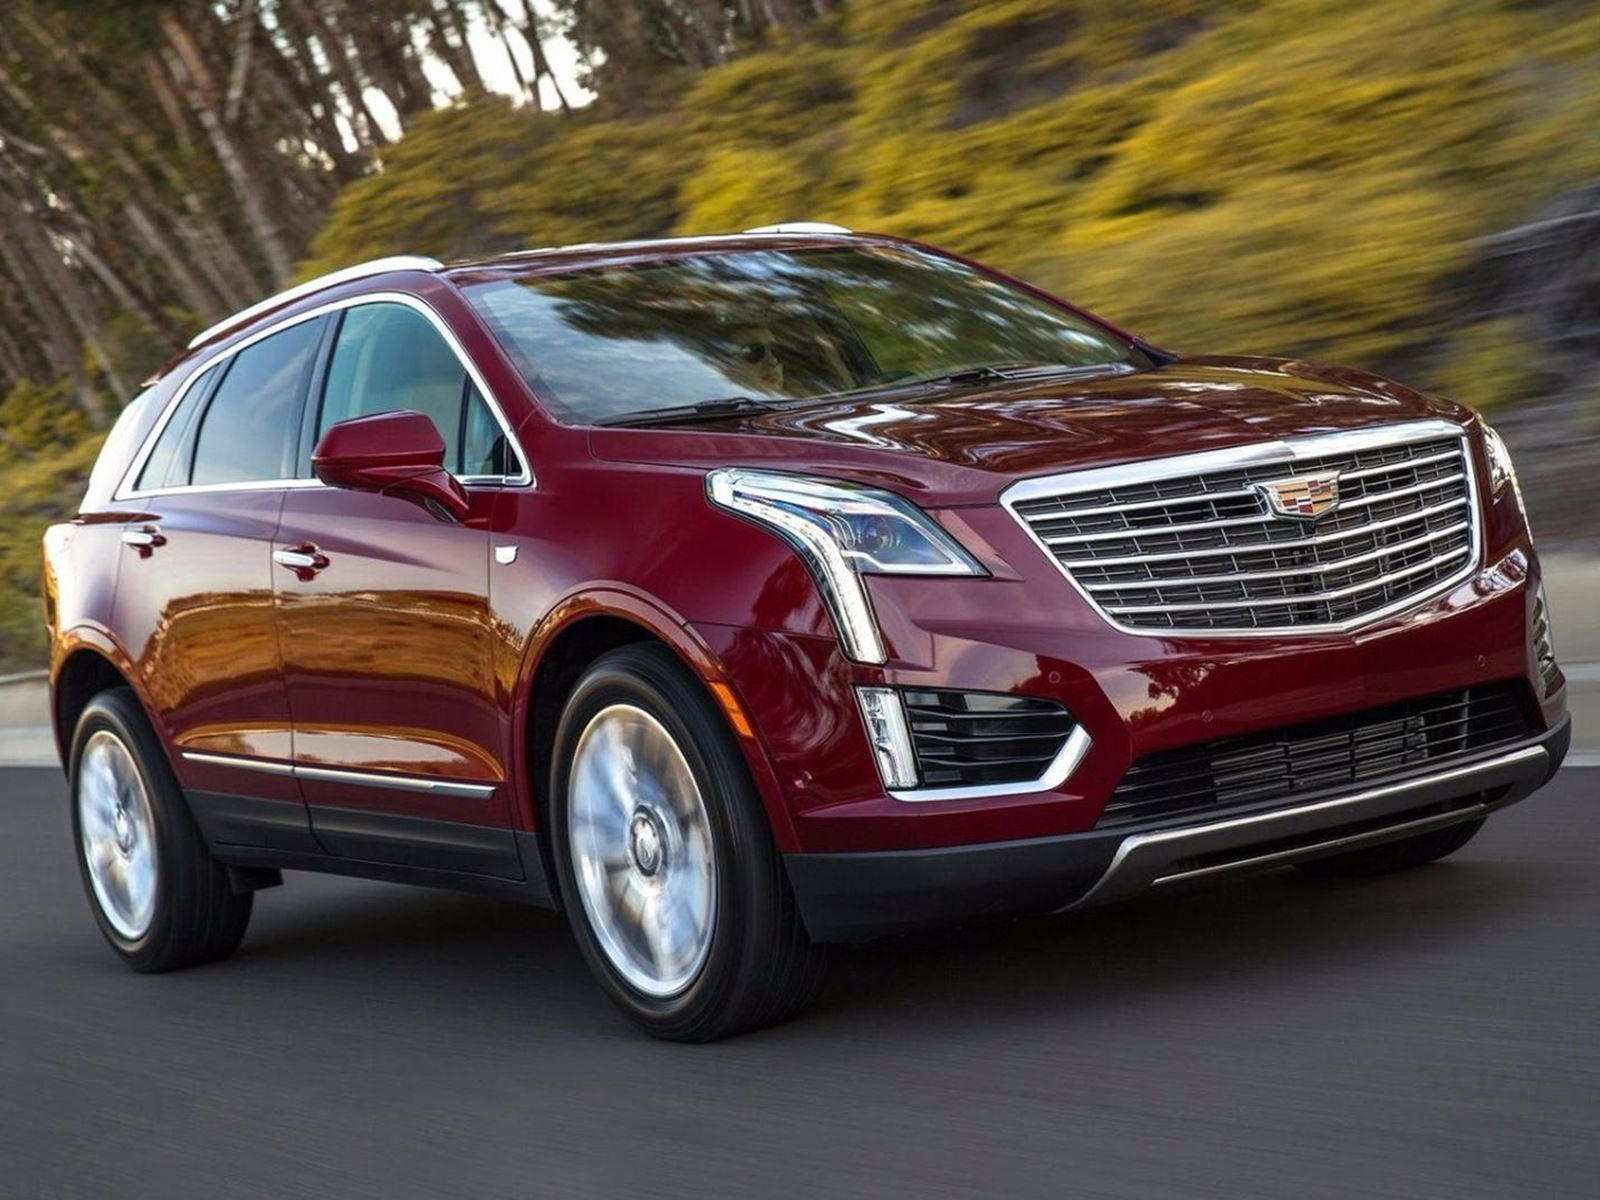 27 New 2019 Cadillac XT5 Exterior And Interior